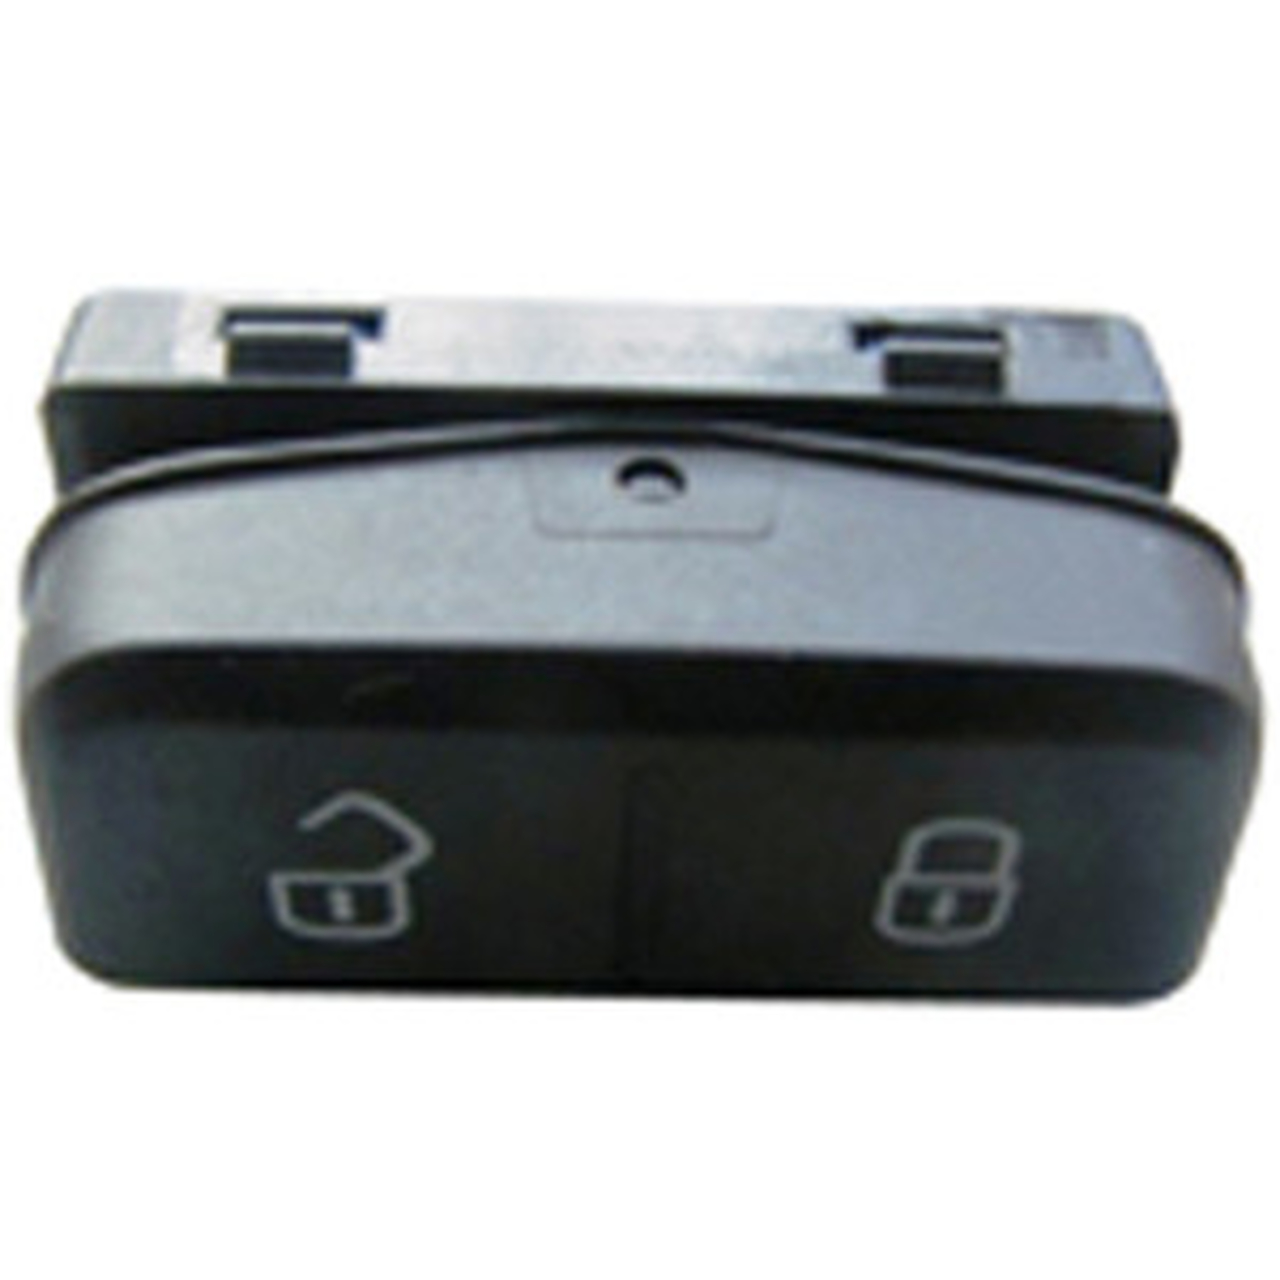 Interruptor Trava P/ Vw Up 13  - Vvval540.060 - Sub-grupo -